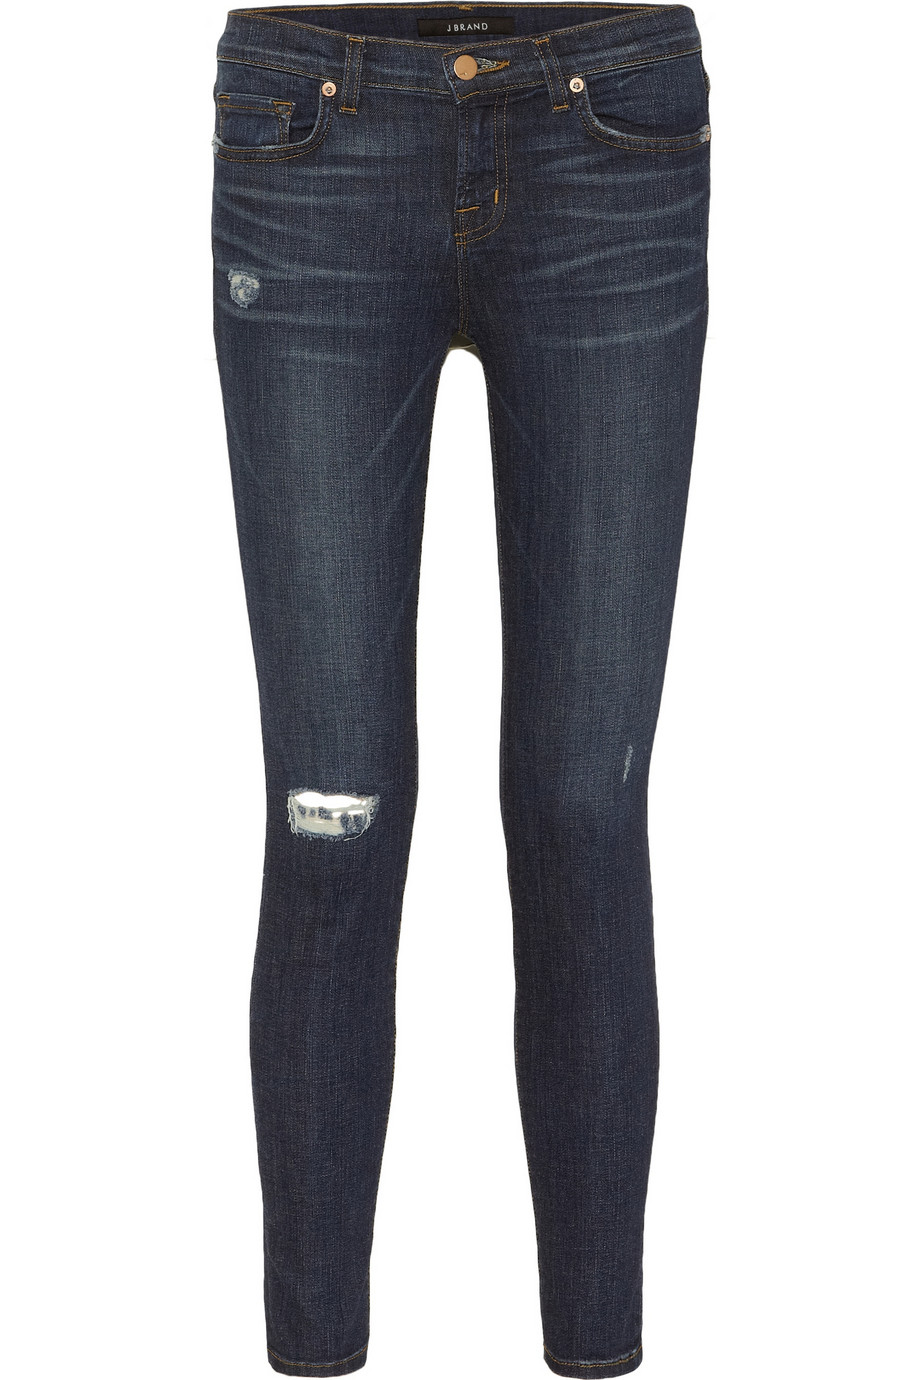 J brand 811 Distressed Mid Rise Skinny Jeans in Blue | Lyst